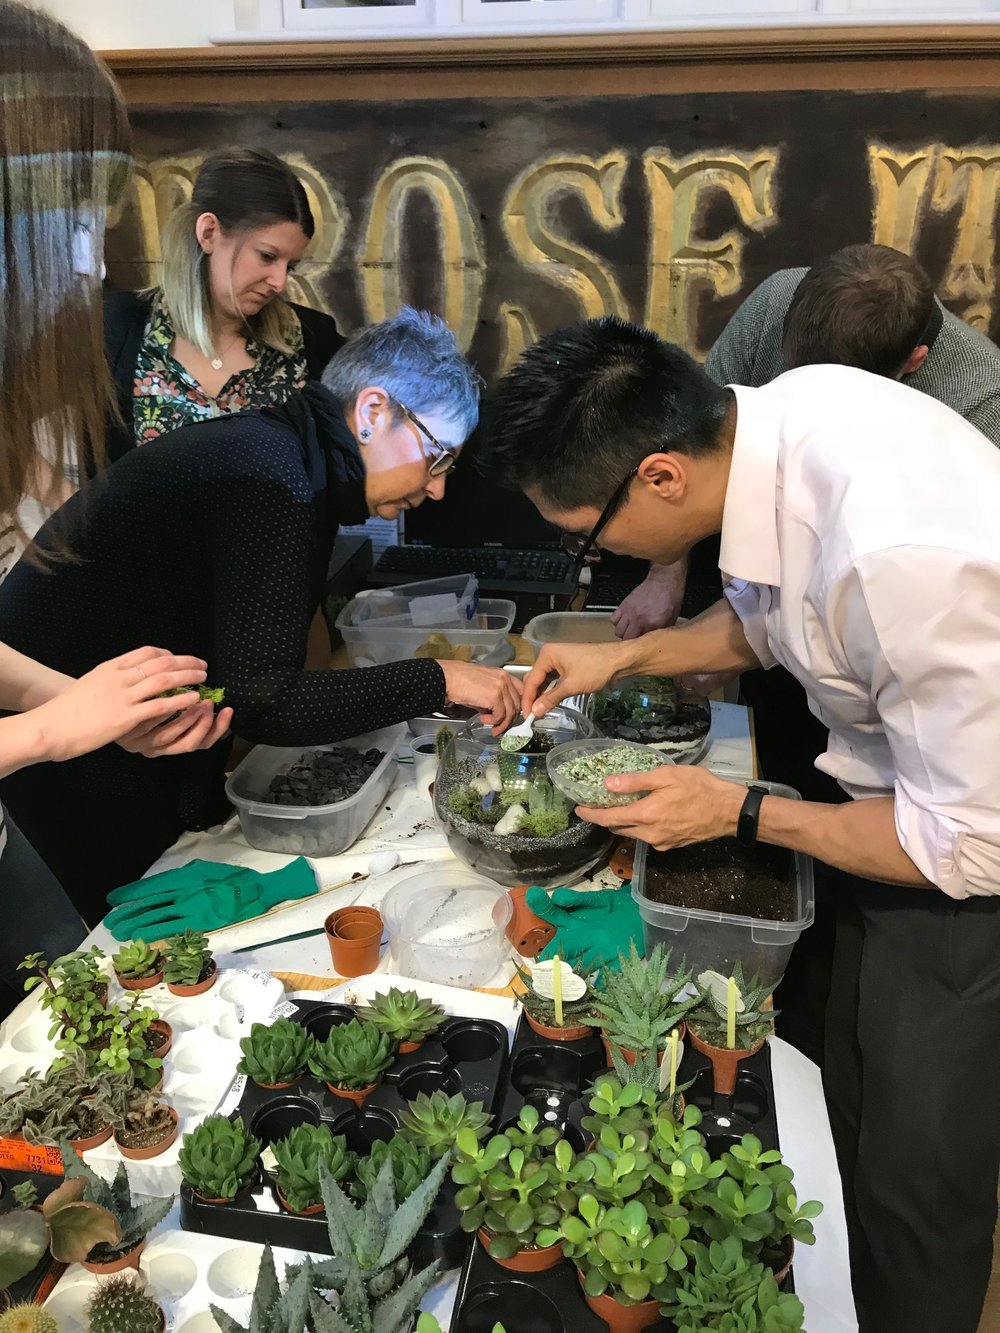 The teams collaborated on their terrarium builds to make unique succulent terrariums for the office spaces.